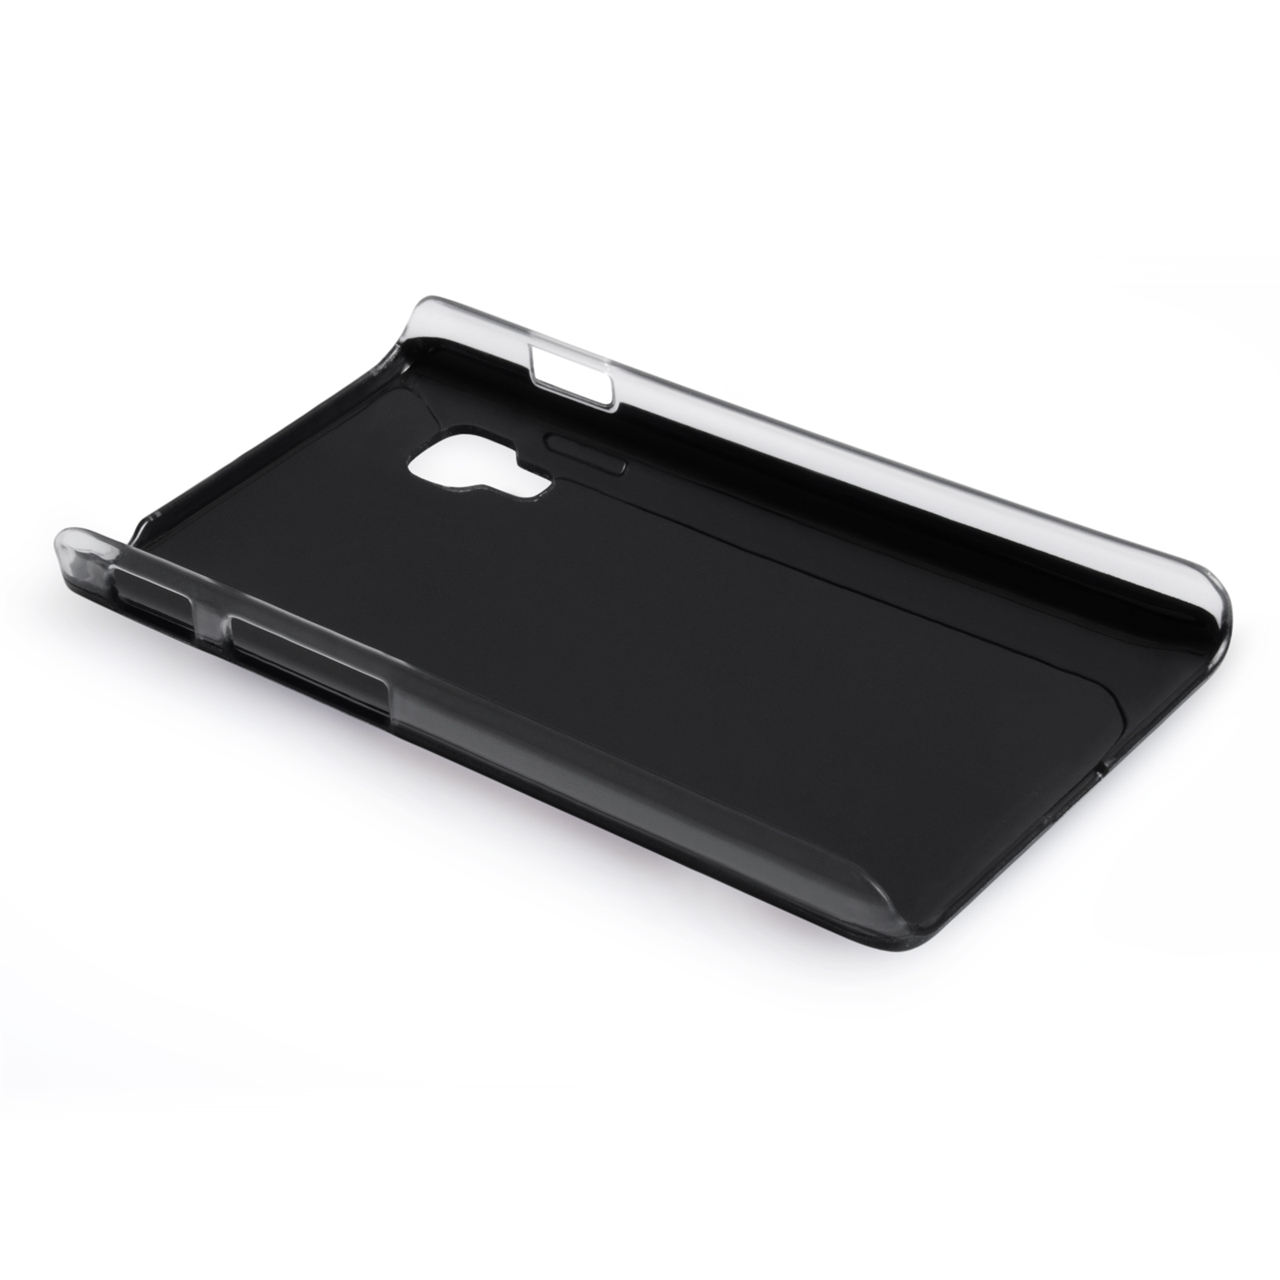 YouSave Accessories LG L5 II Black IMD Hard Case